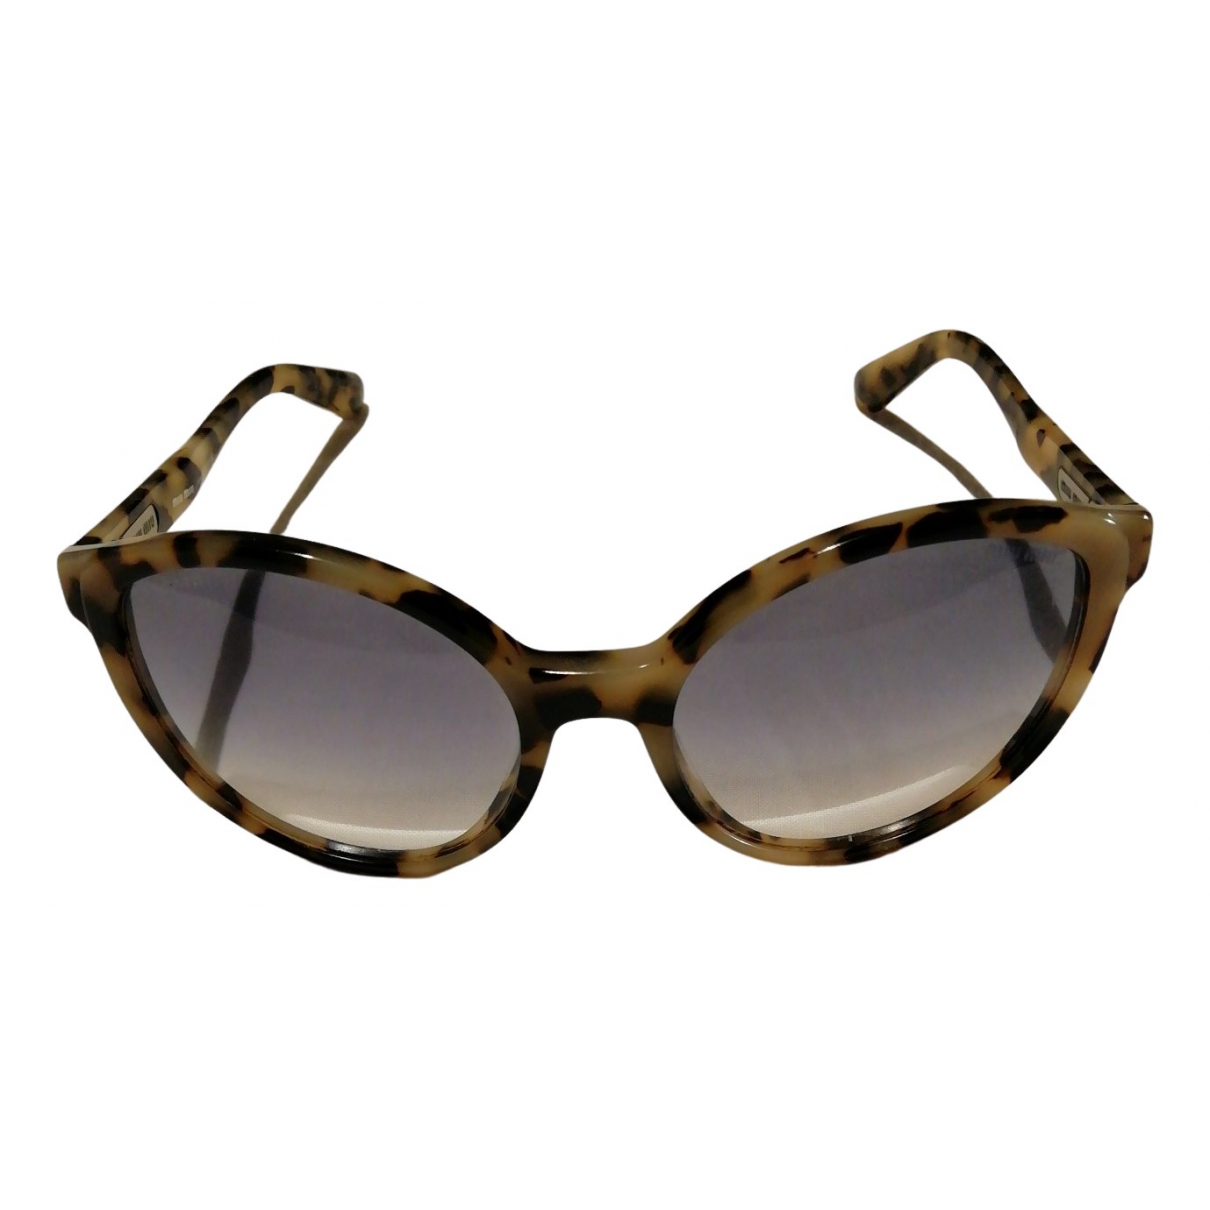 Miu Miu N Multicolour Sunglasses for Women N